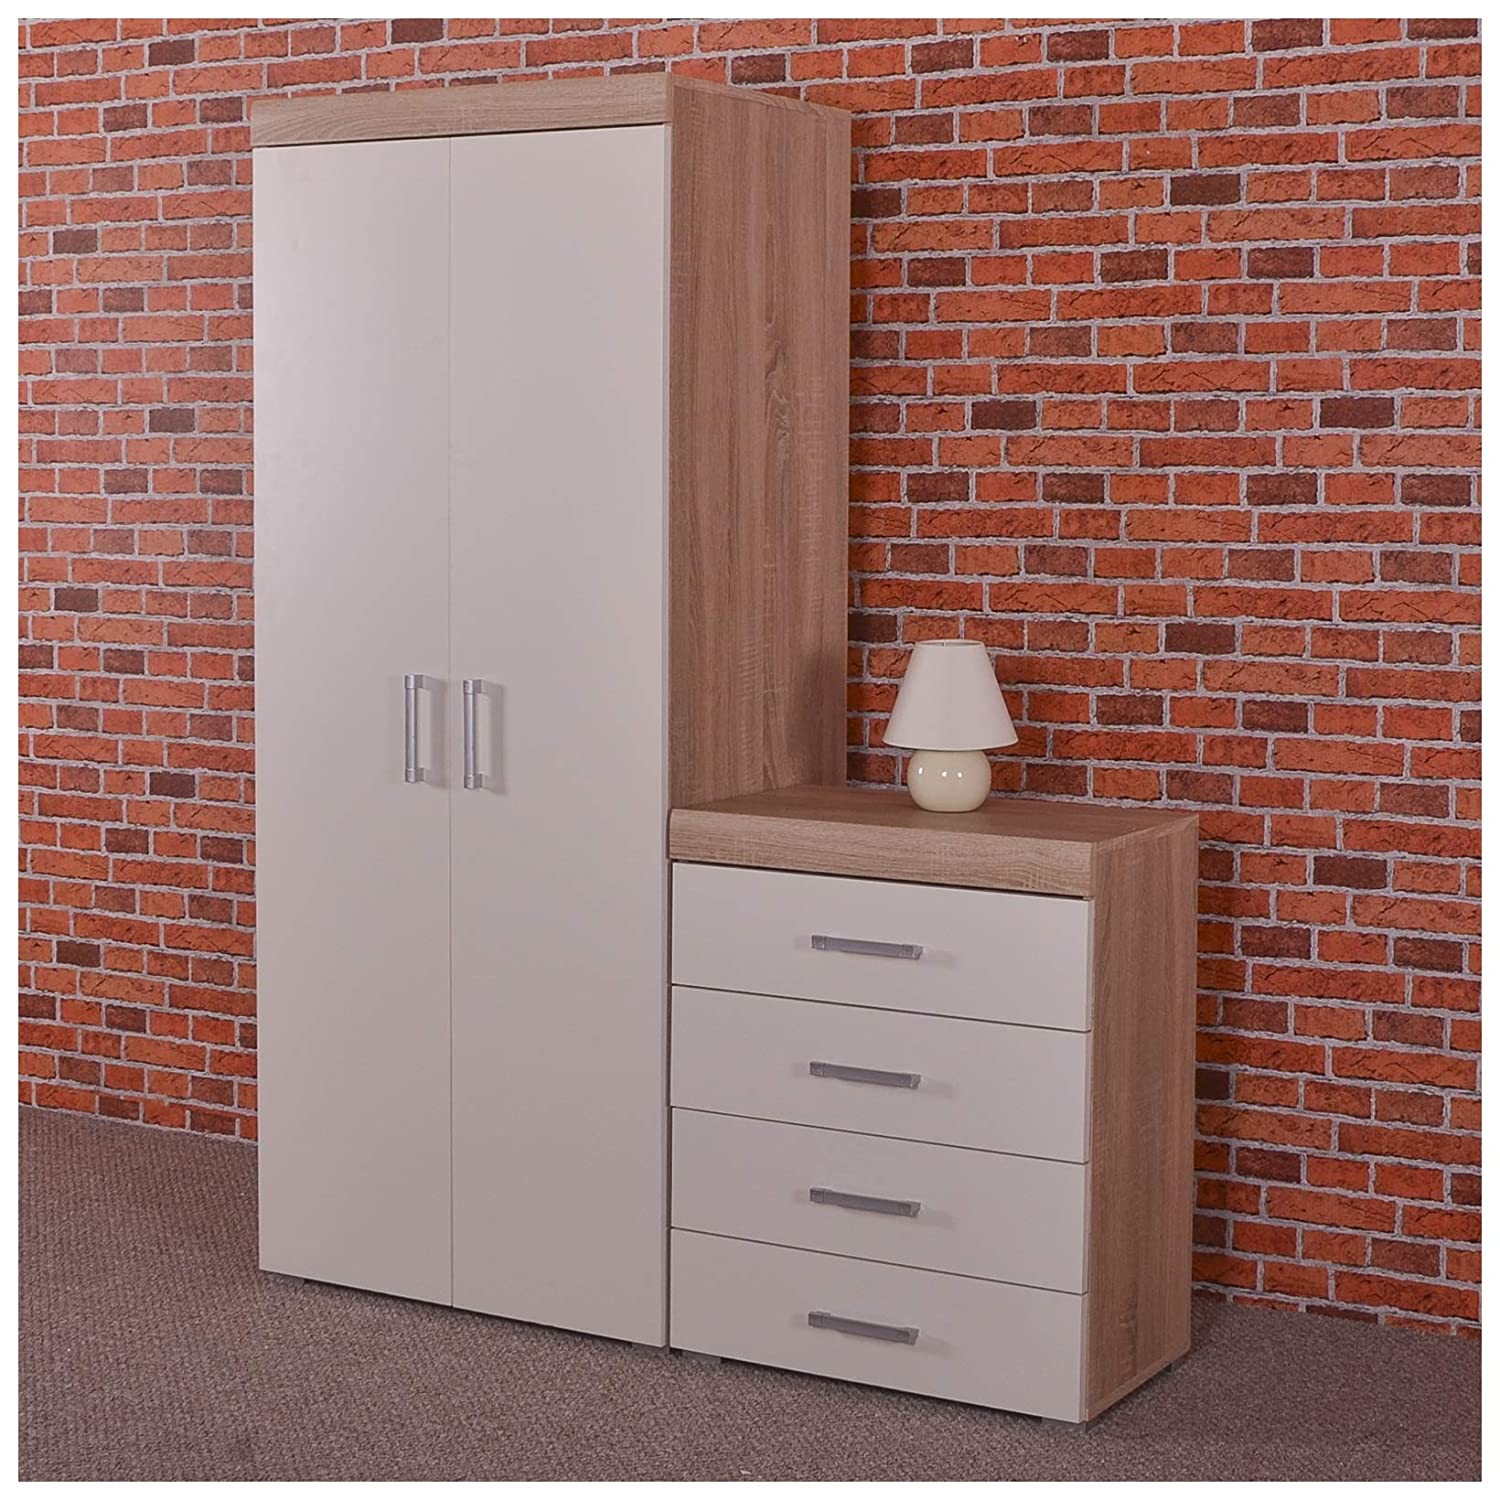 DRP Trading 2 Door Wardrobe & 4 Drawer Chest in White & Sonoma Oak Bedroom Furniture Set